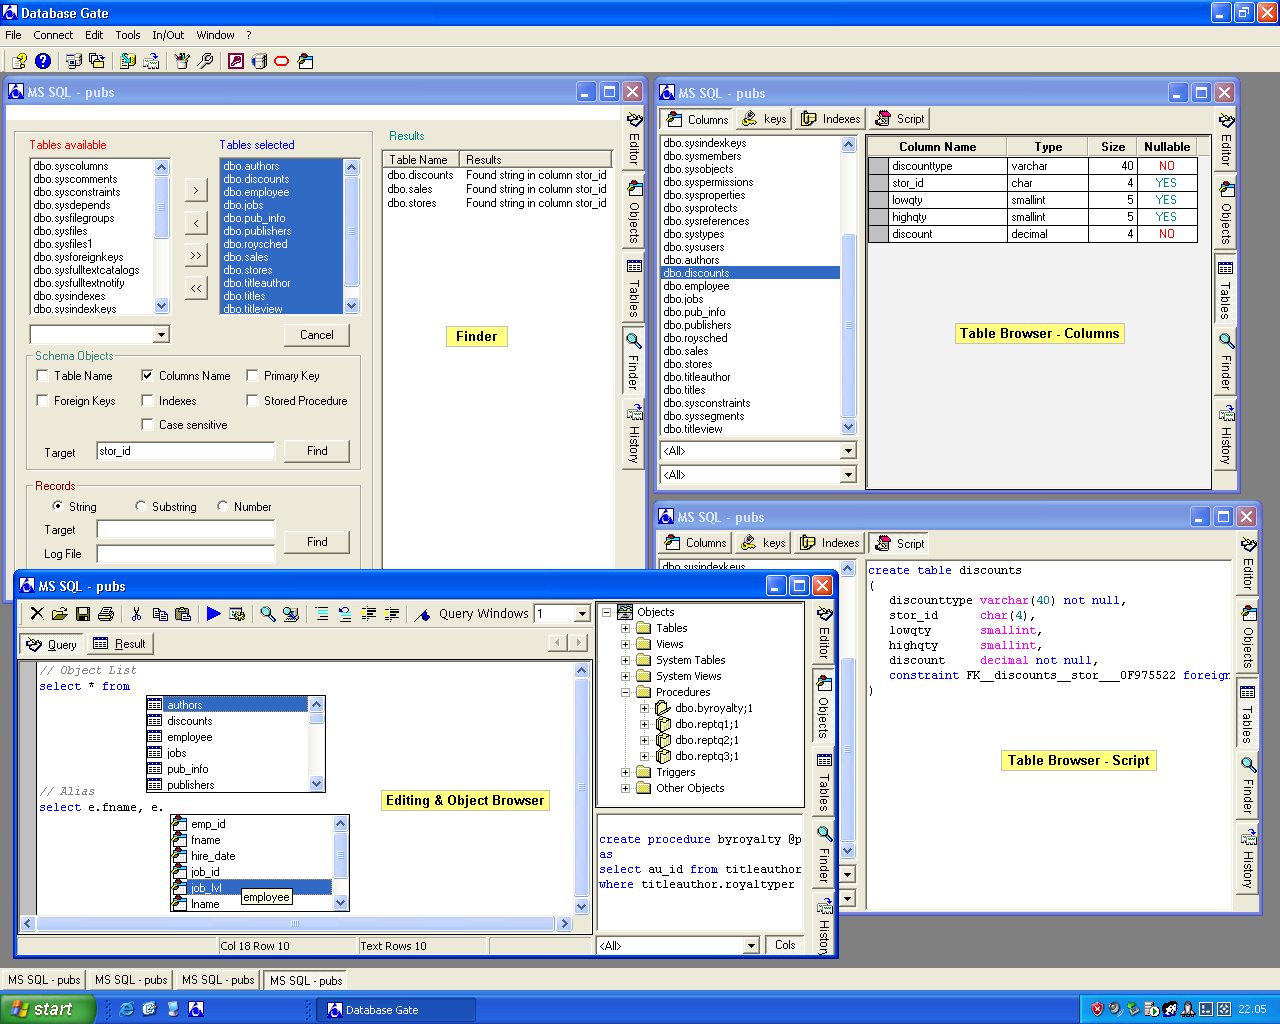 sql, editor, ODBC, database, table, syntax highlighting, client, server, DSN